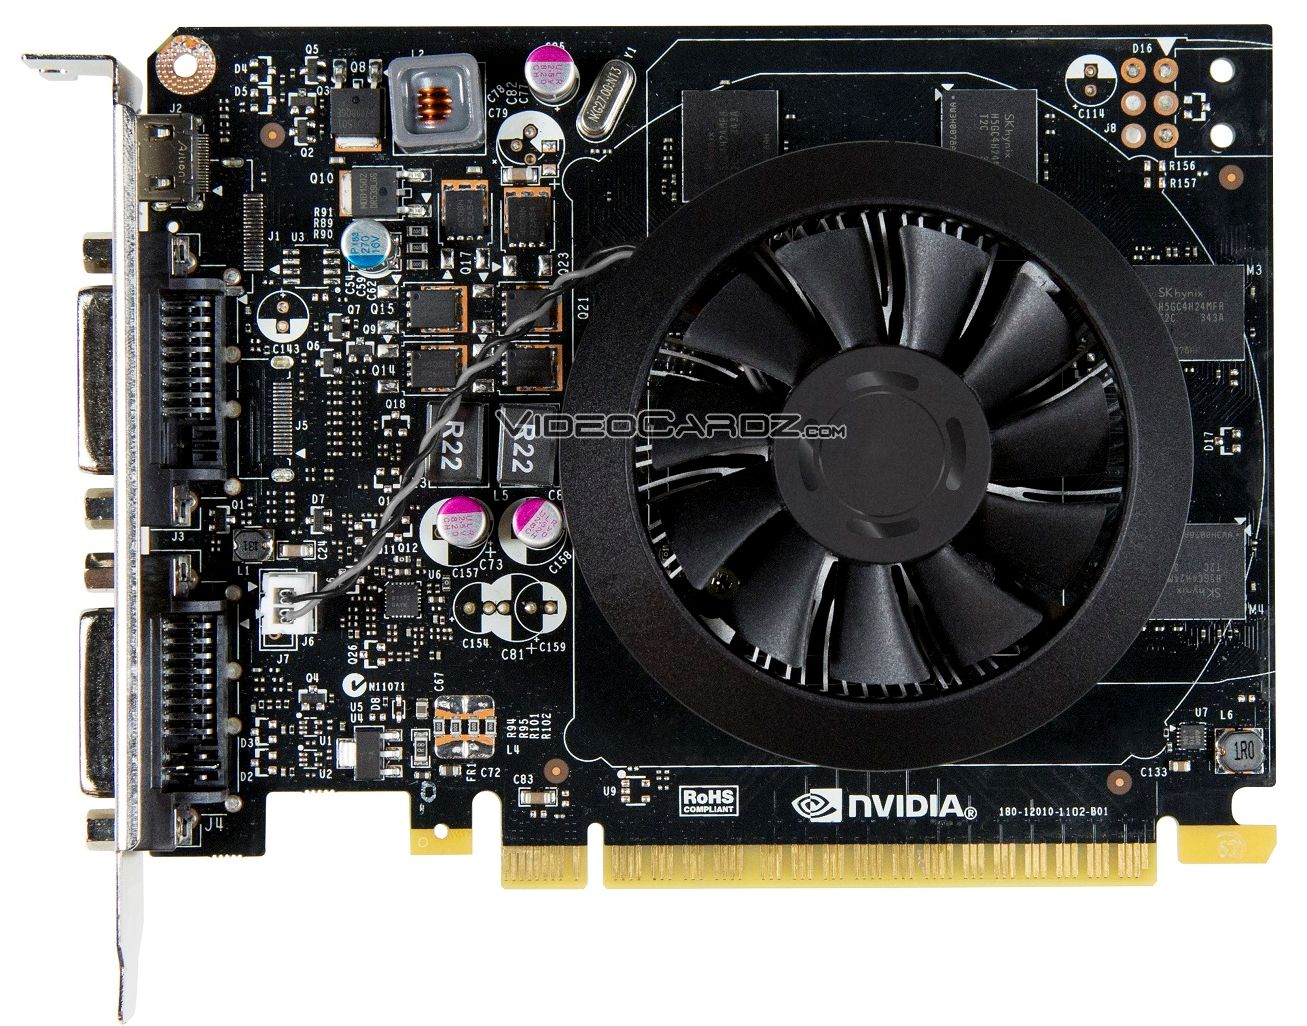 Gigabyte gtx 750 ti windforce review pure overclock page 3 -  Geforce Gtx 750 Ti Front